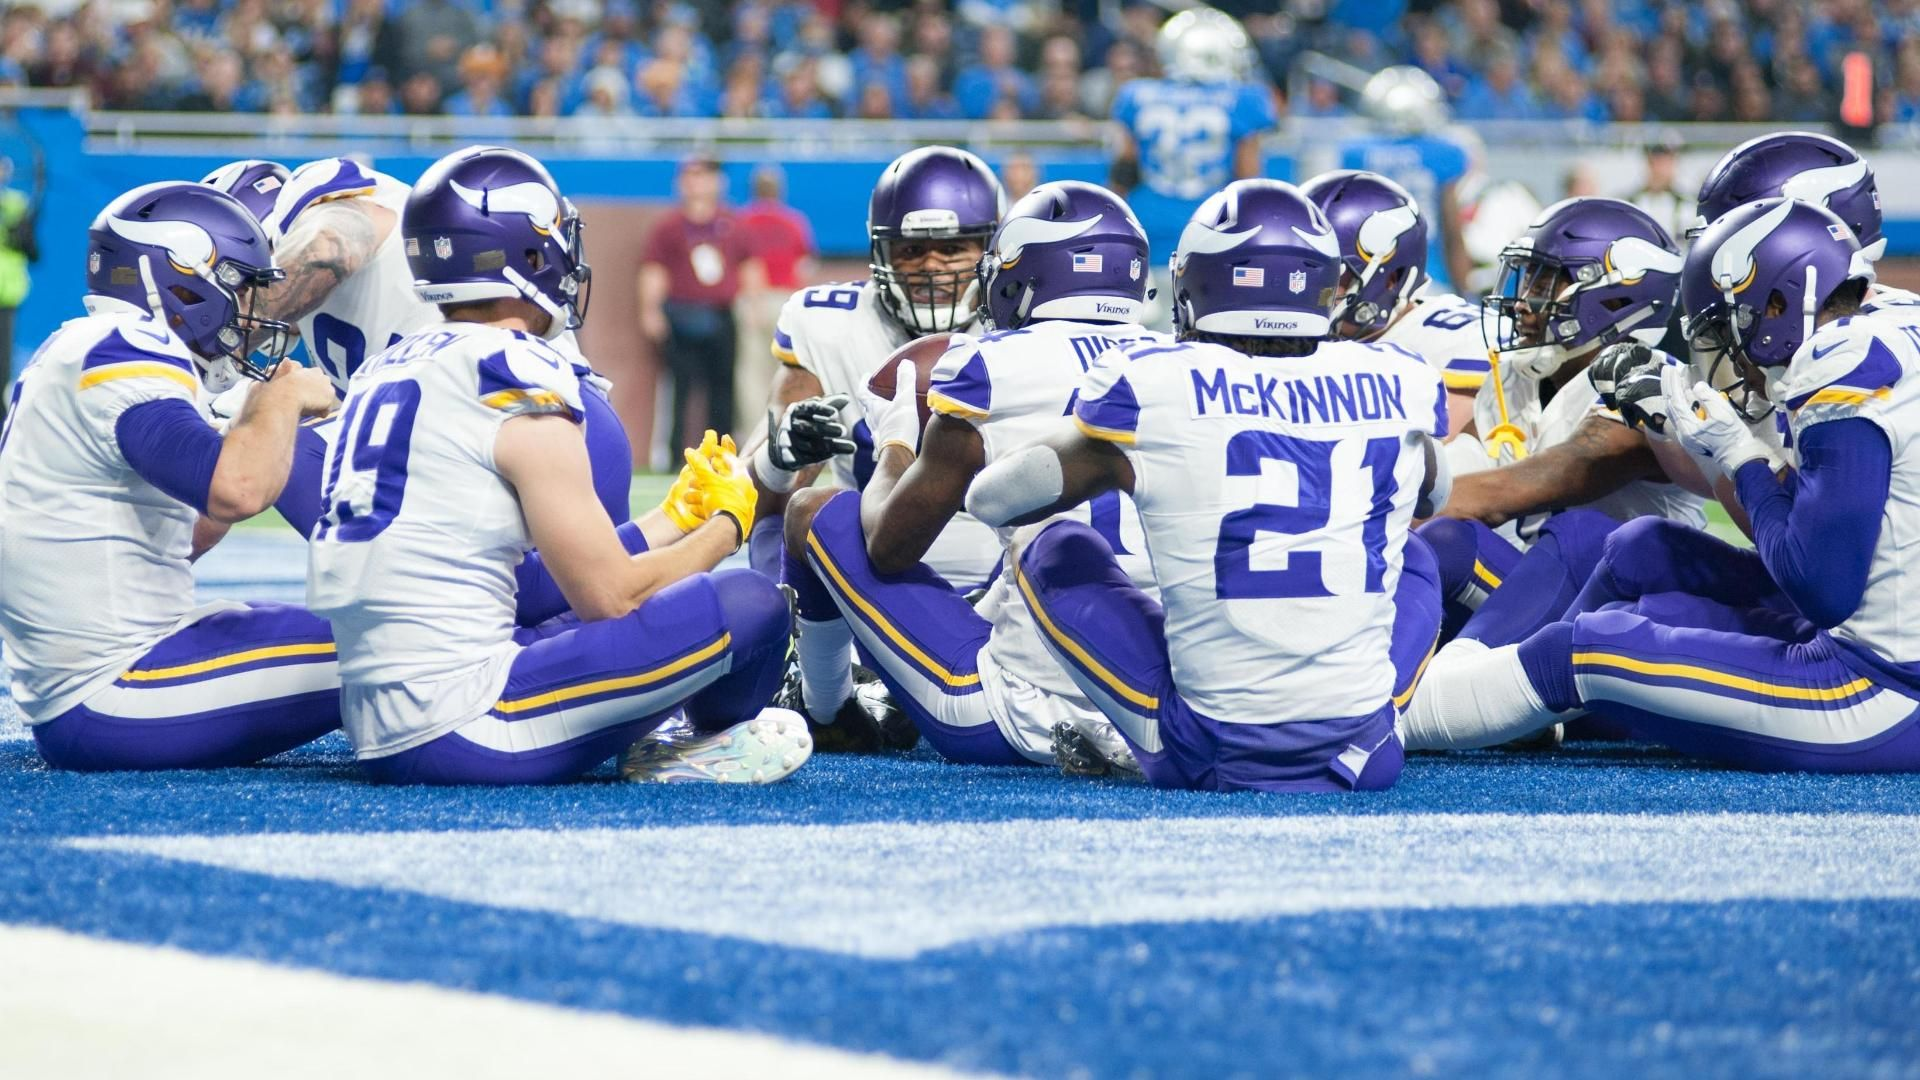 Vikings feast after Keenum's rushing TD